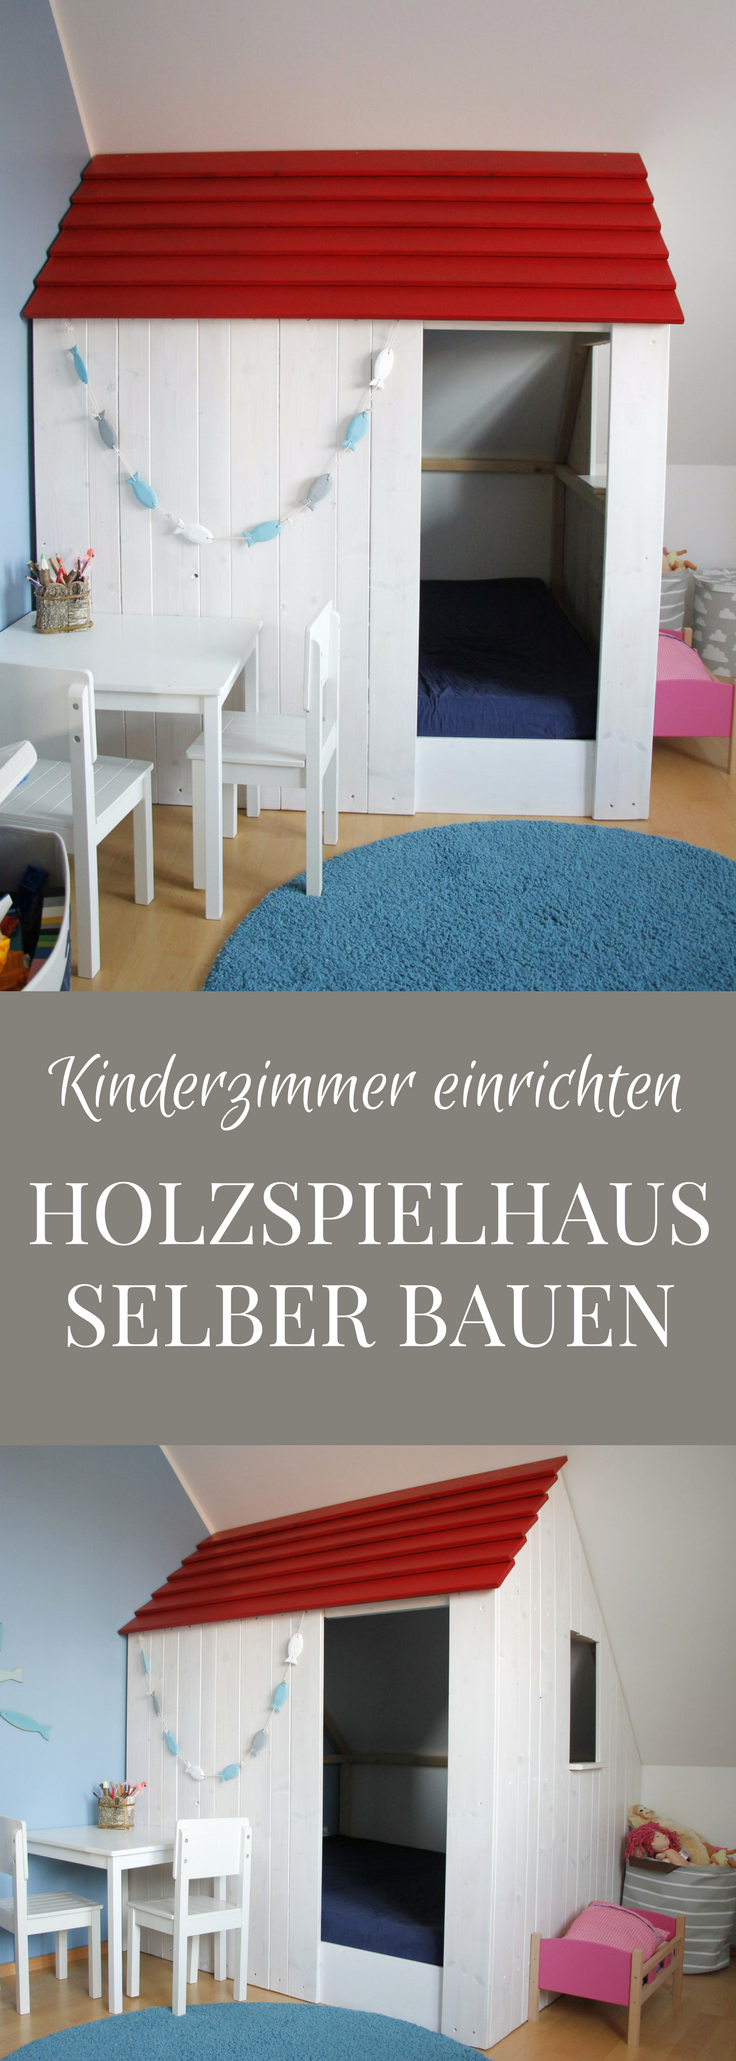 kinderzimmer spielhaus selber bauen holz projekt f r. Black Bedroom Furniture Sets. Home Design Ideas